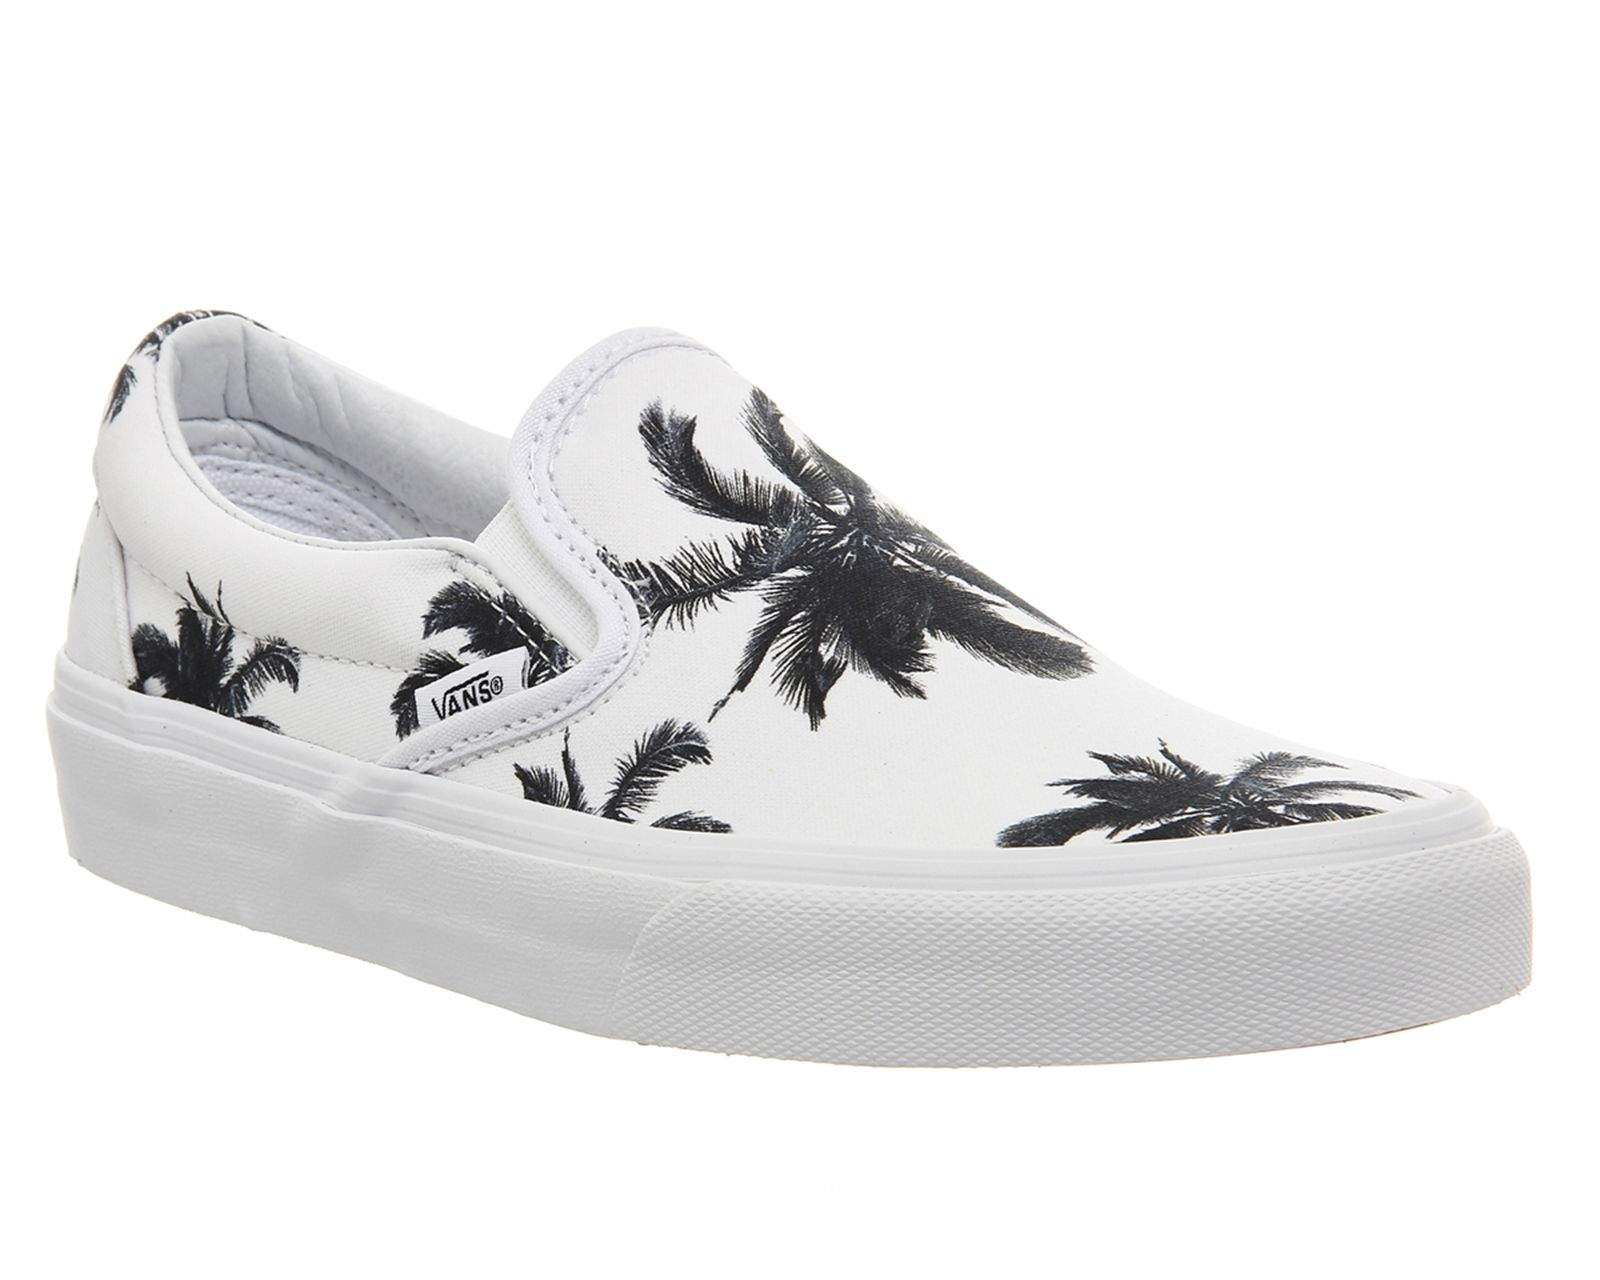 For Sale Trainers Vans Classic Slip On Shoes Palm Print White Unisex Sports